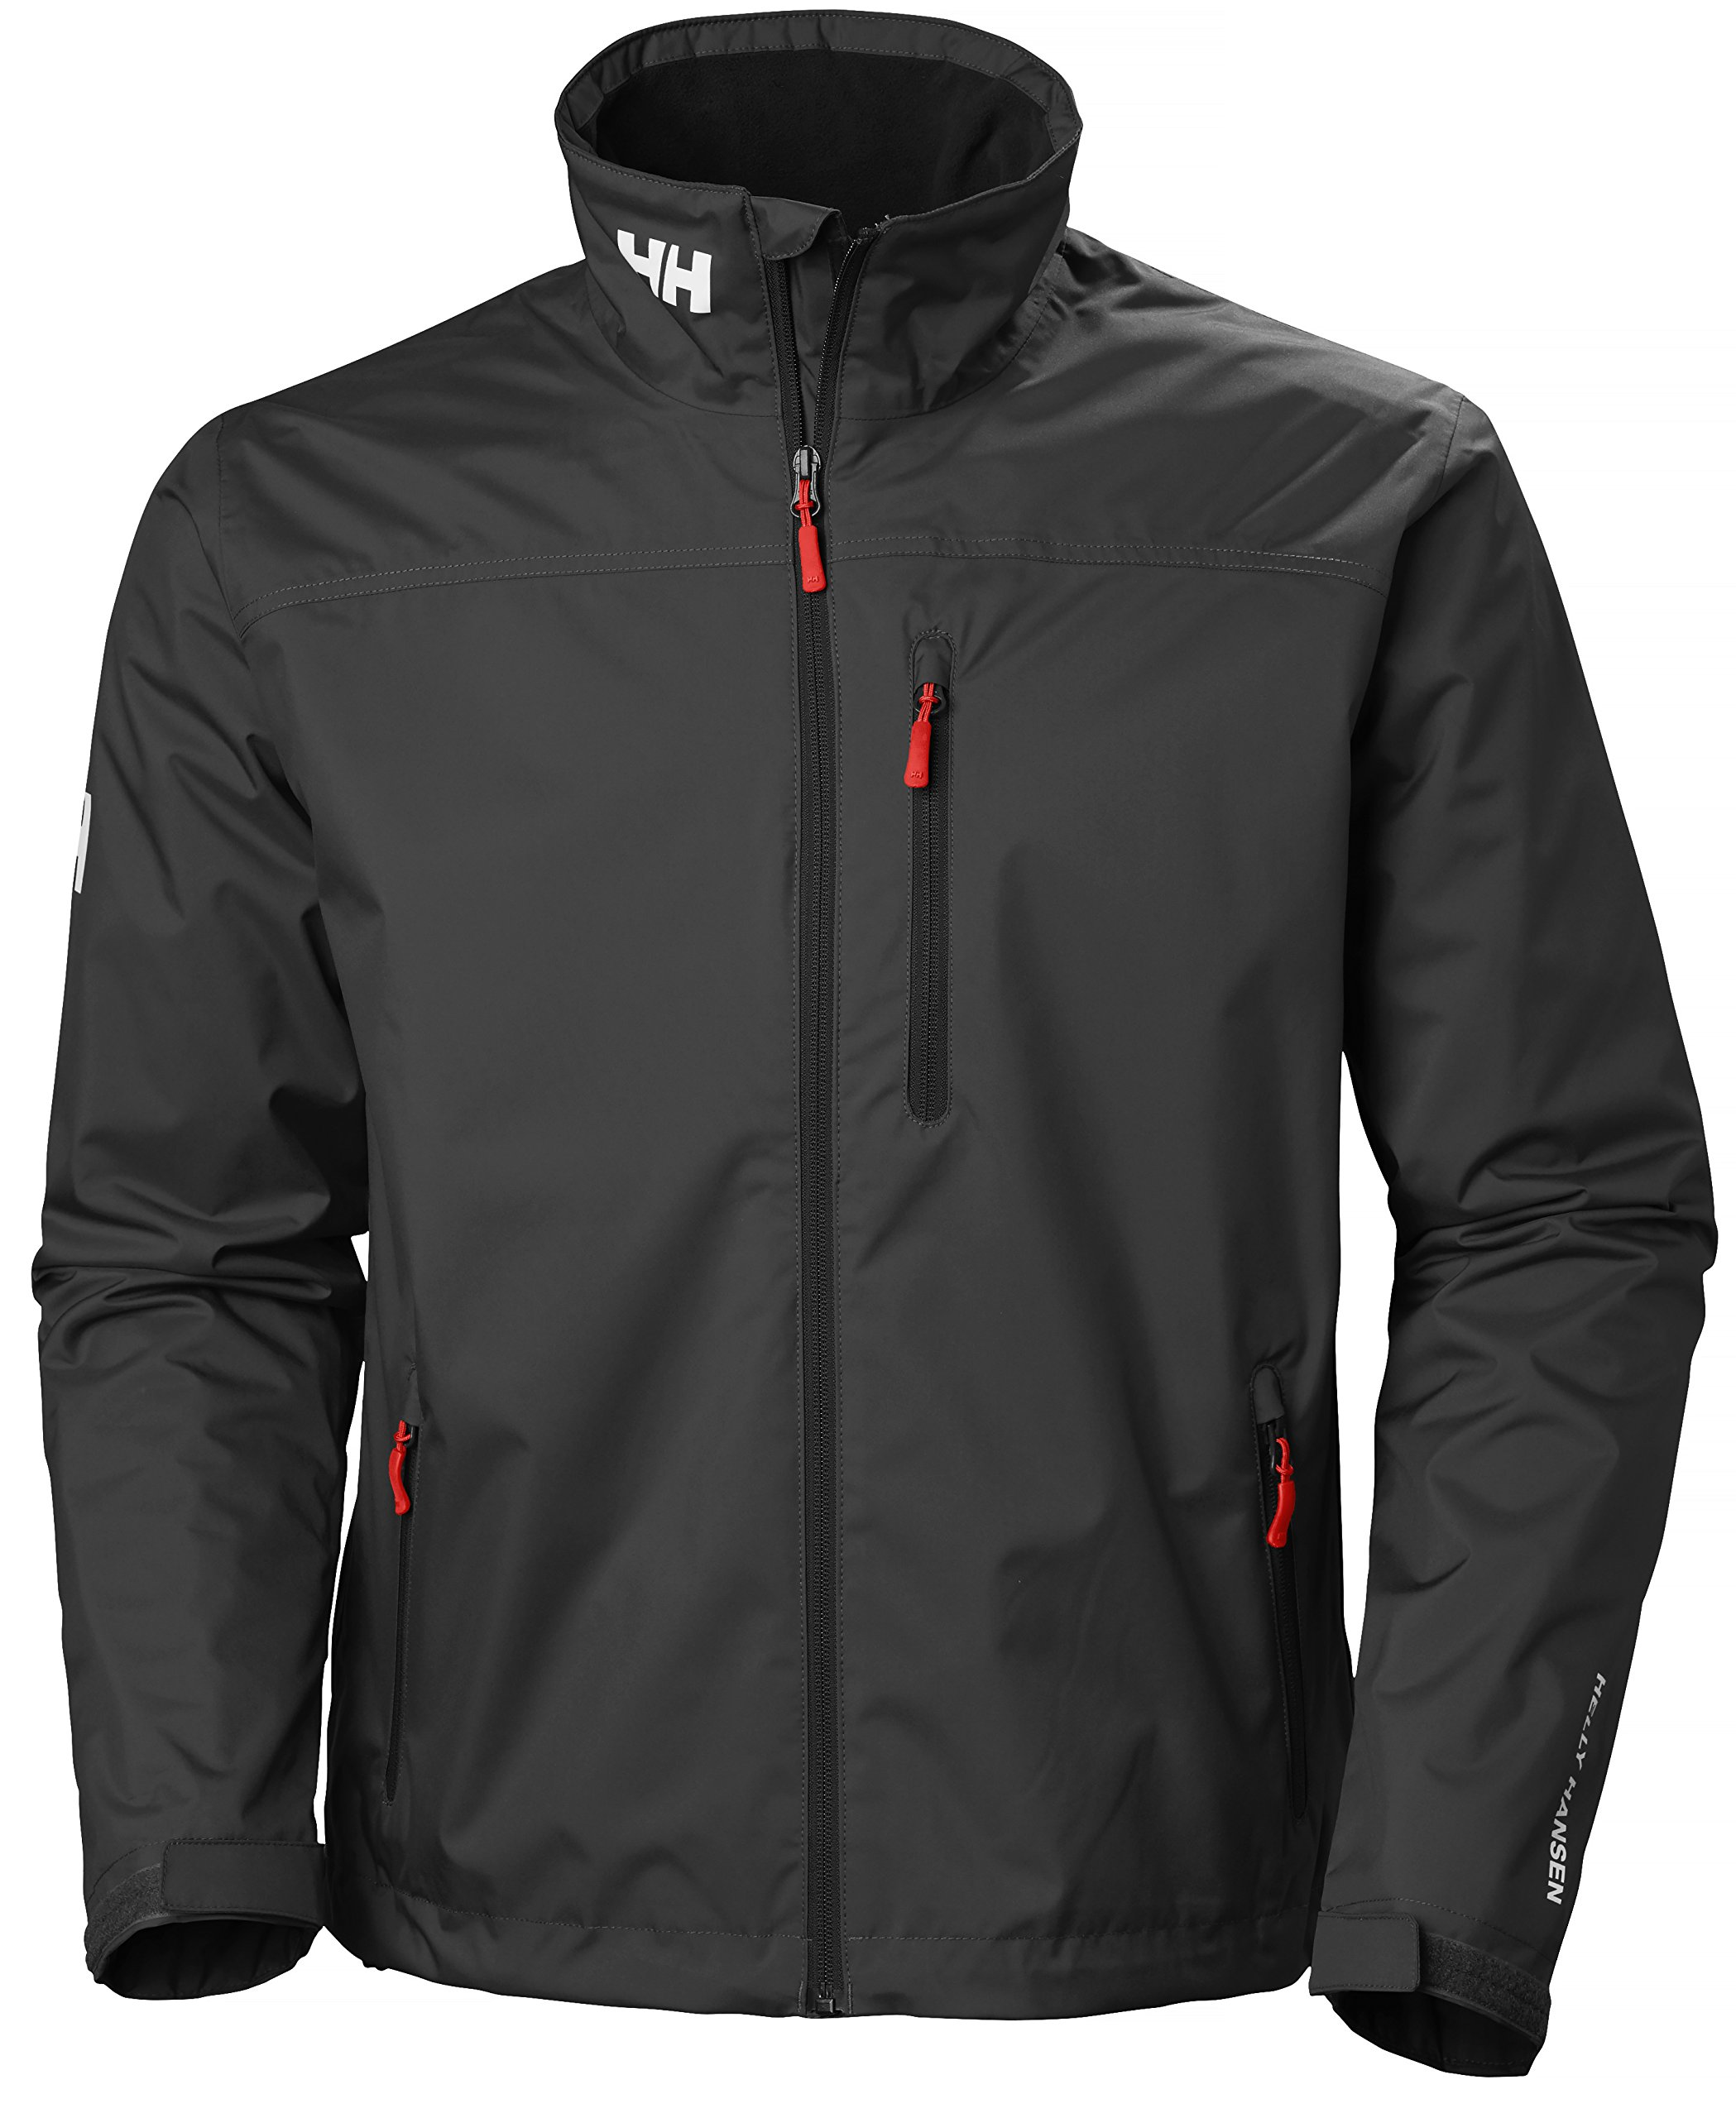 Helly Hansen Men's Crew Midlayer Fleece Lined Waterproof Windproof Breathable Rain Coat Jacket, 990 Black, X-Large by Helly Hansen